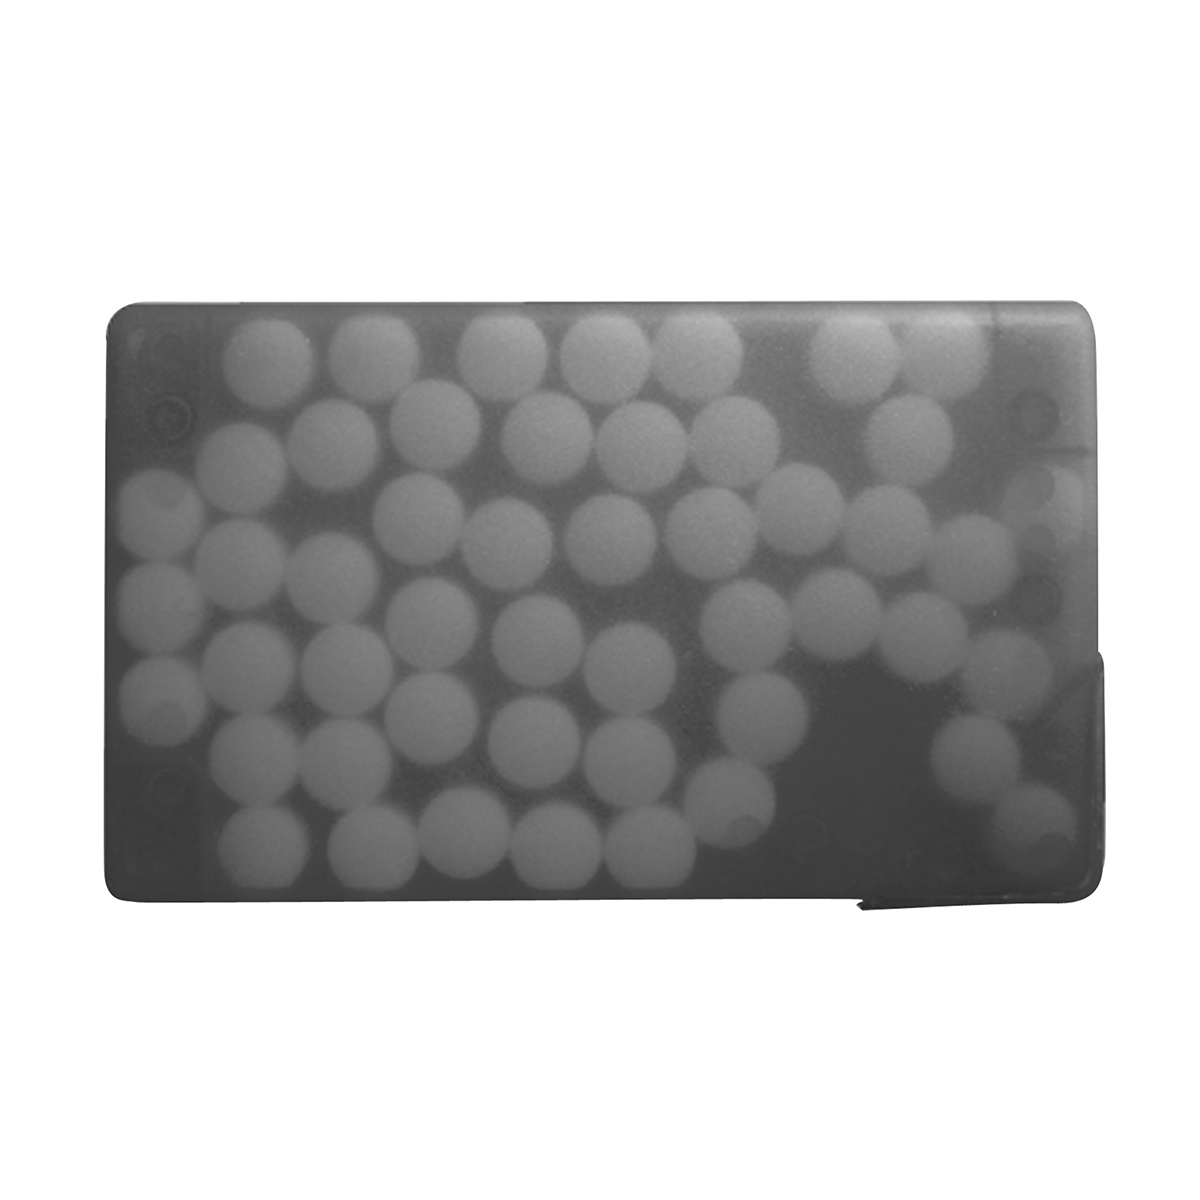 Black Credit Card Mints